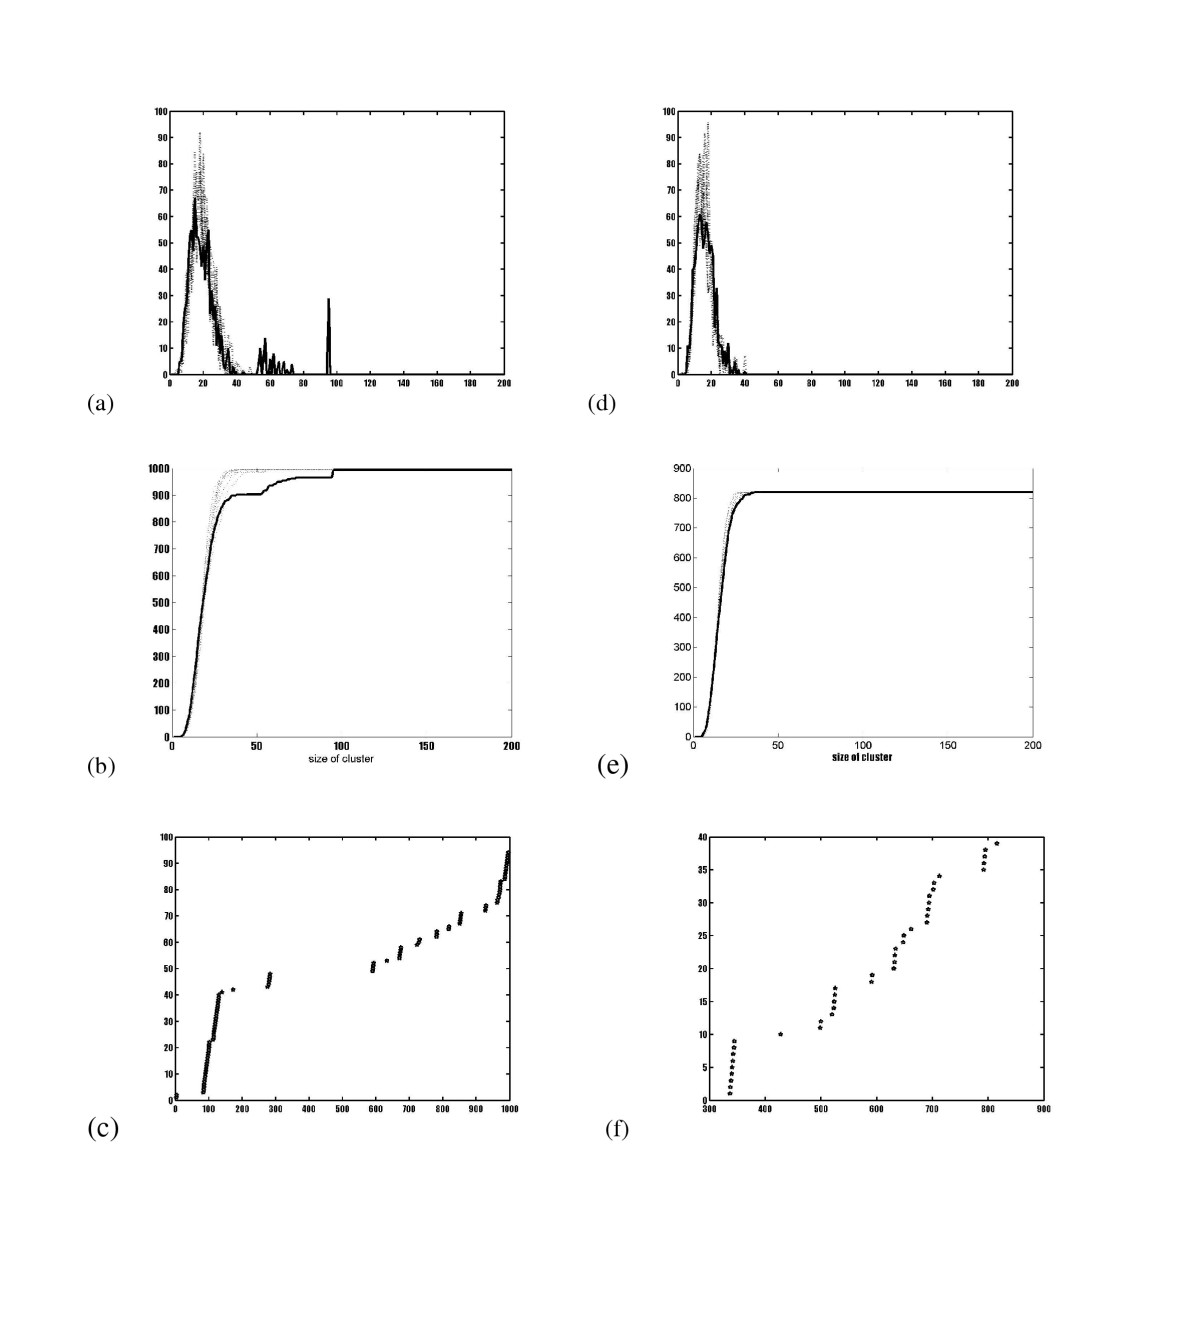 http://static-content.springer.com/image/art%3A10.1186%2F1471-2105-6-109/MediaObjects/12859_2004_Article_434_Fig11_HTML.jpg